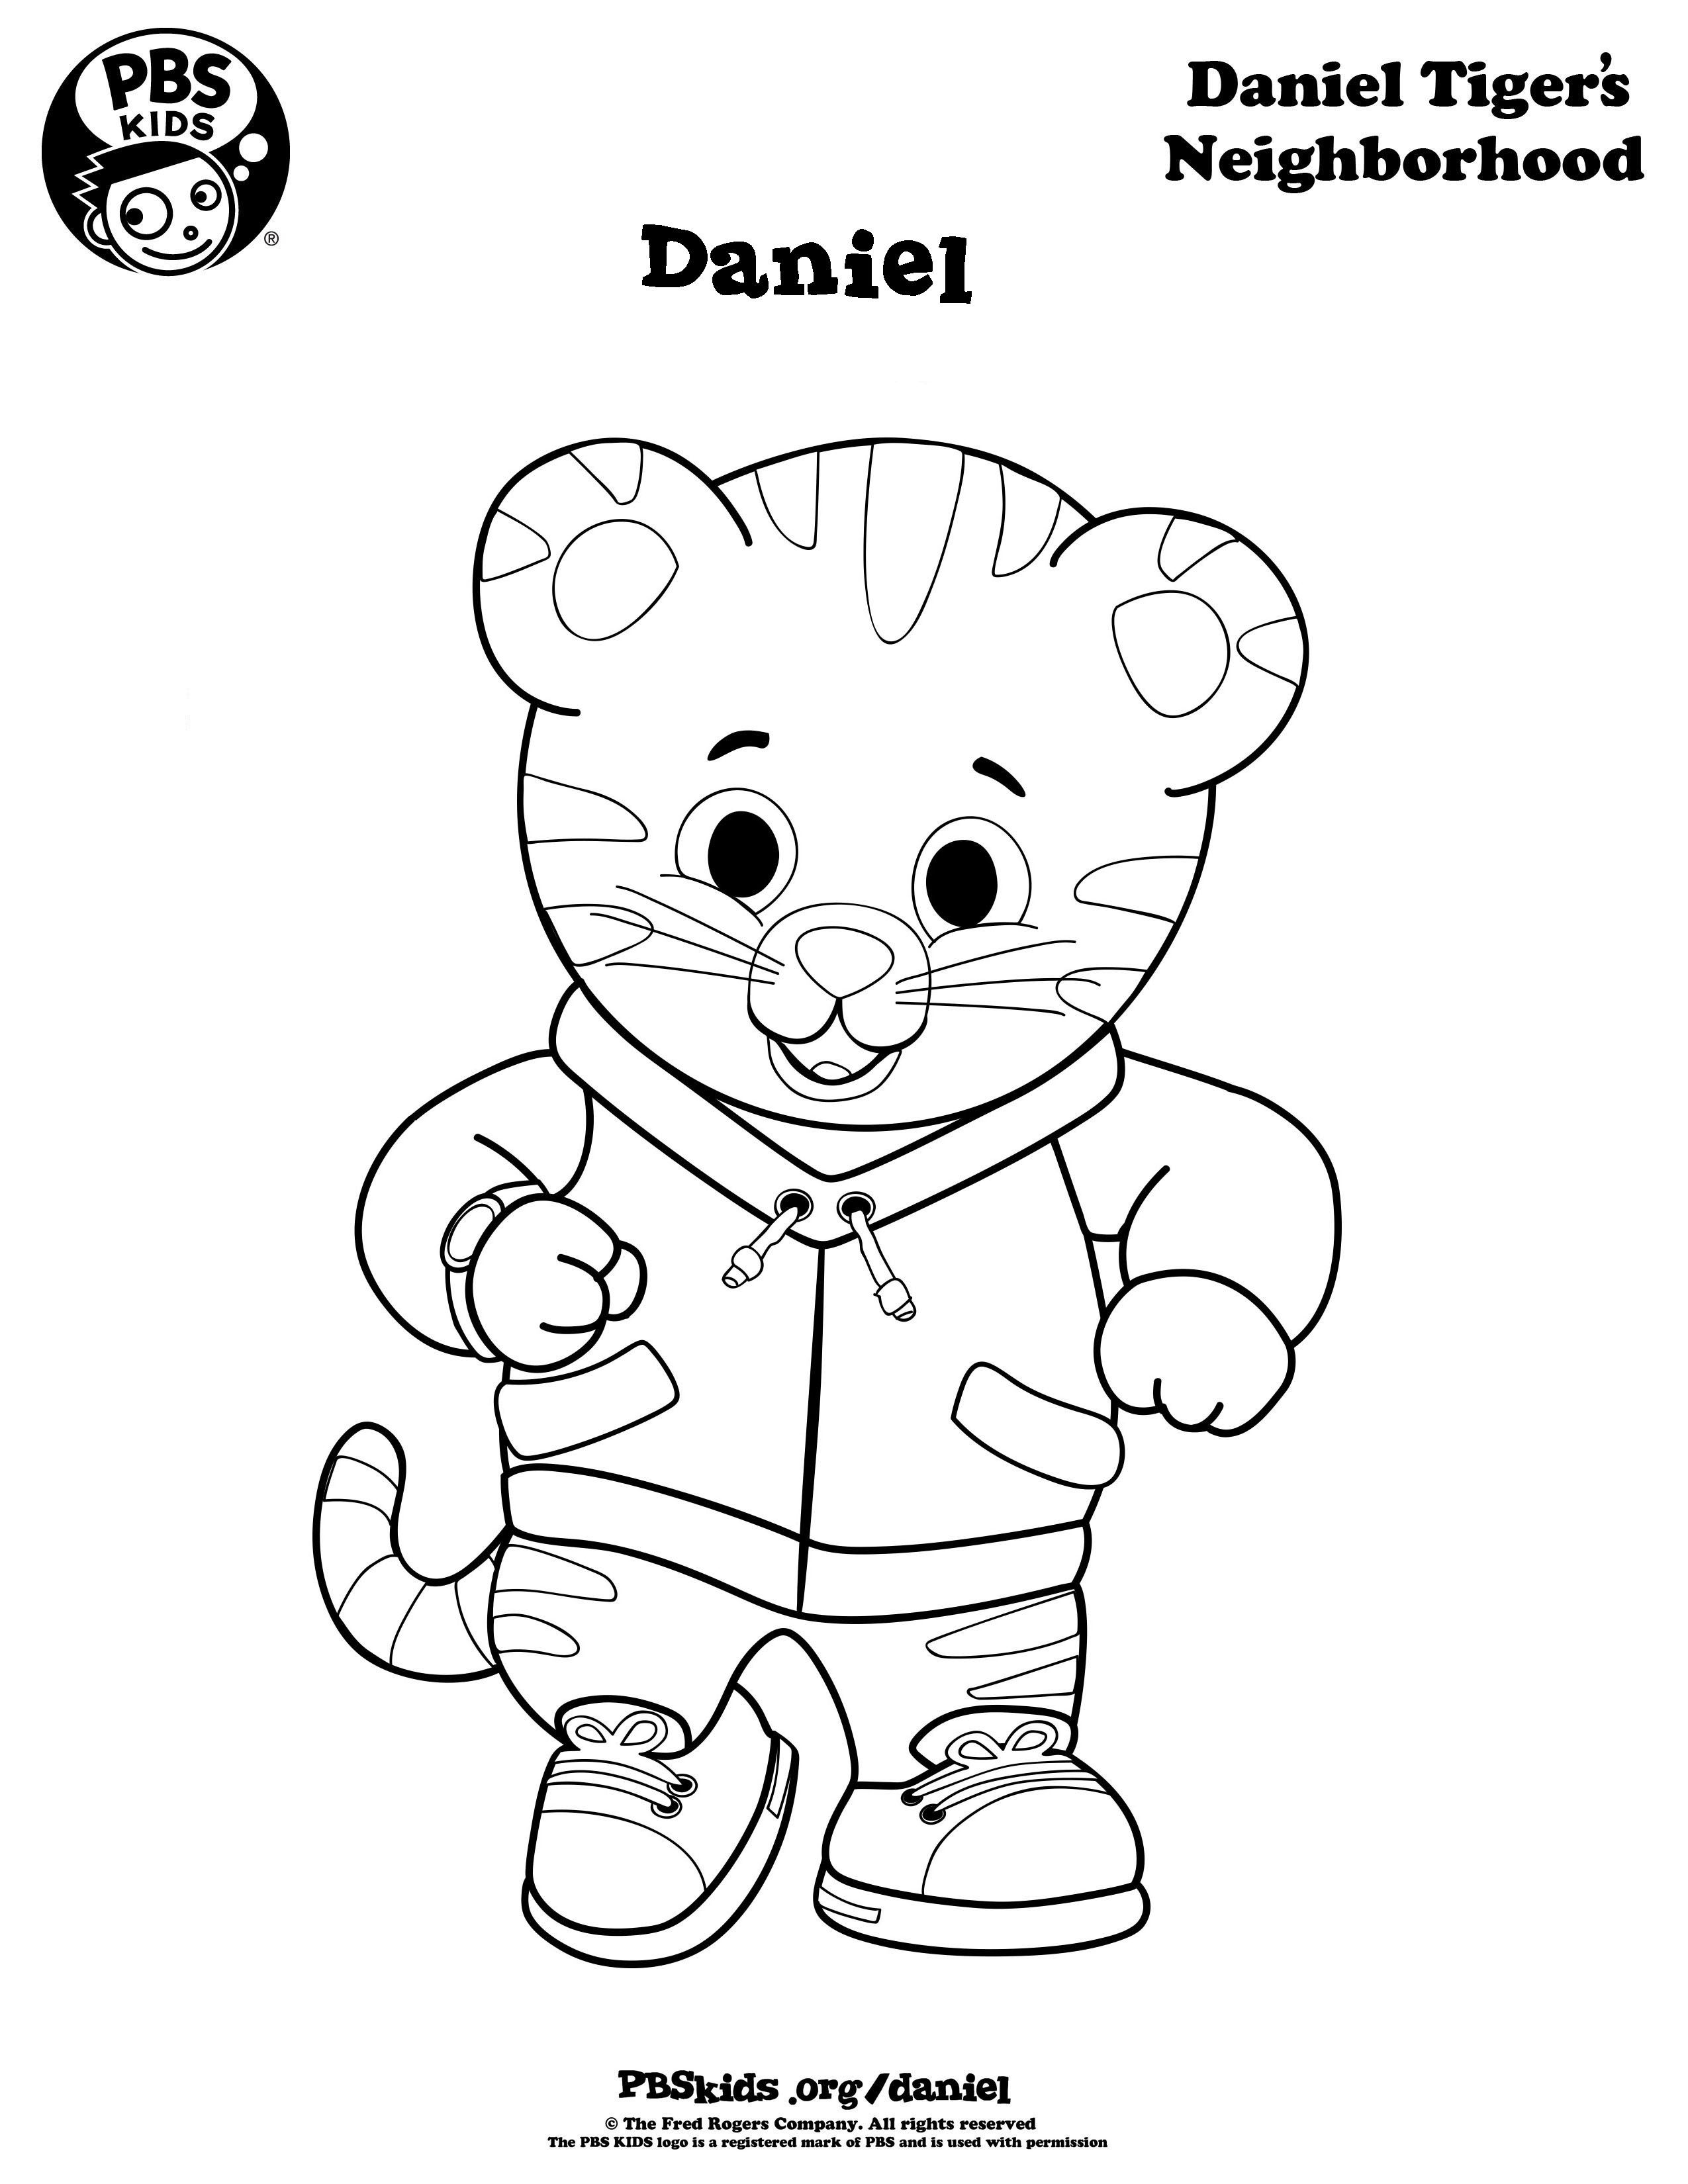 Pinkristen Miller On Noah's 1St Birthday | Pinterest | Daniel - Free Printable Daniel Tiger Coloring Pages